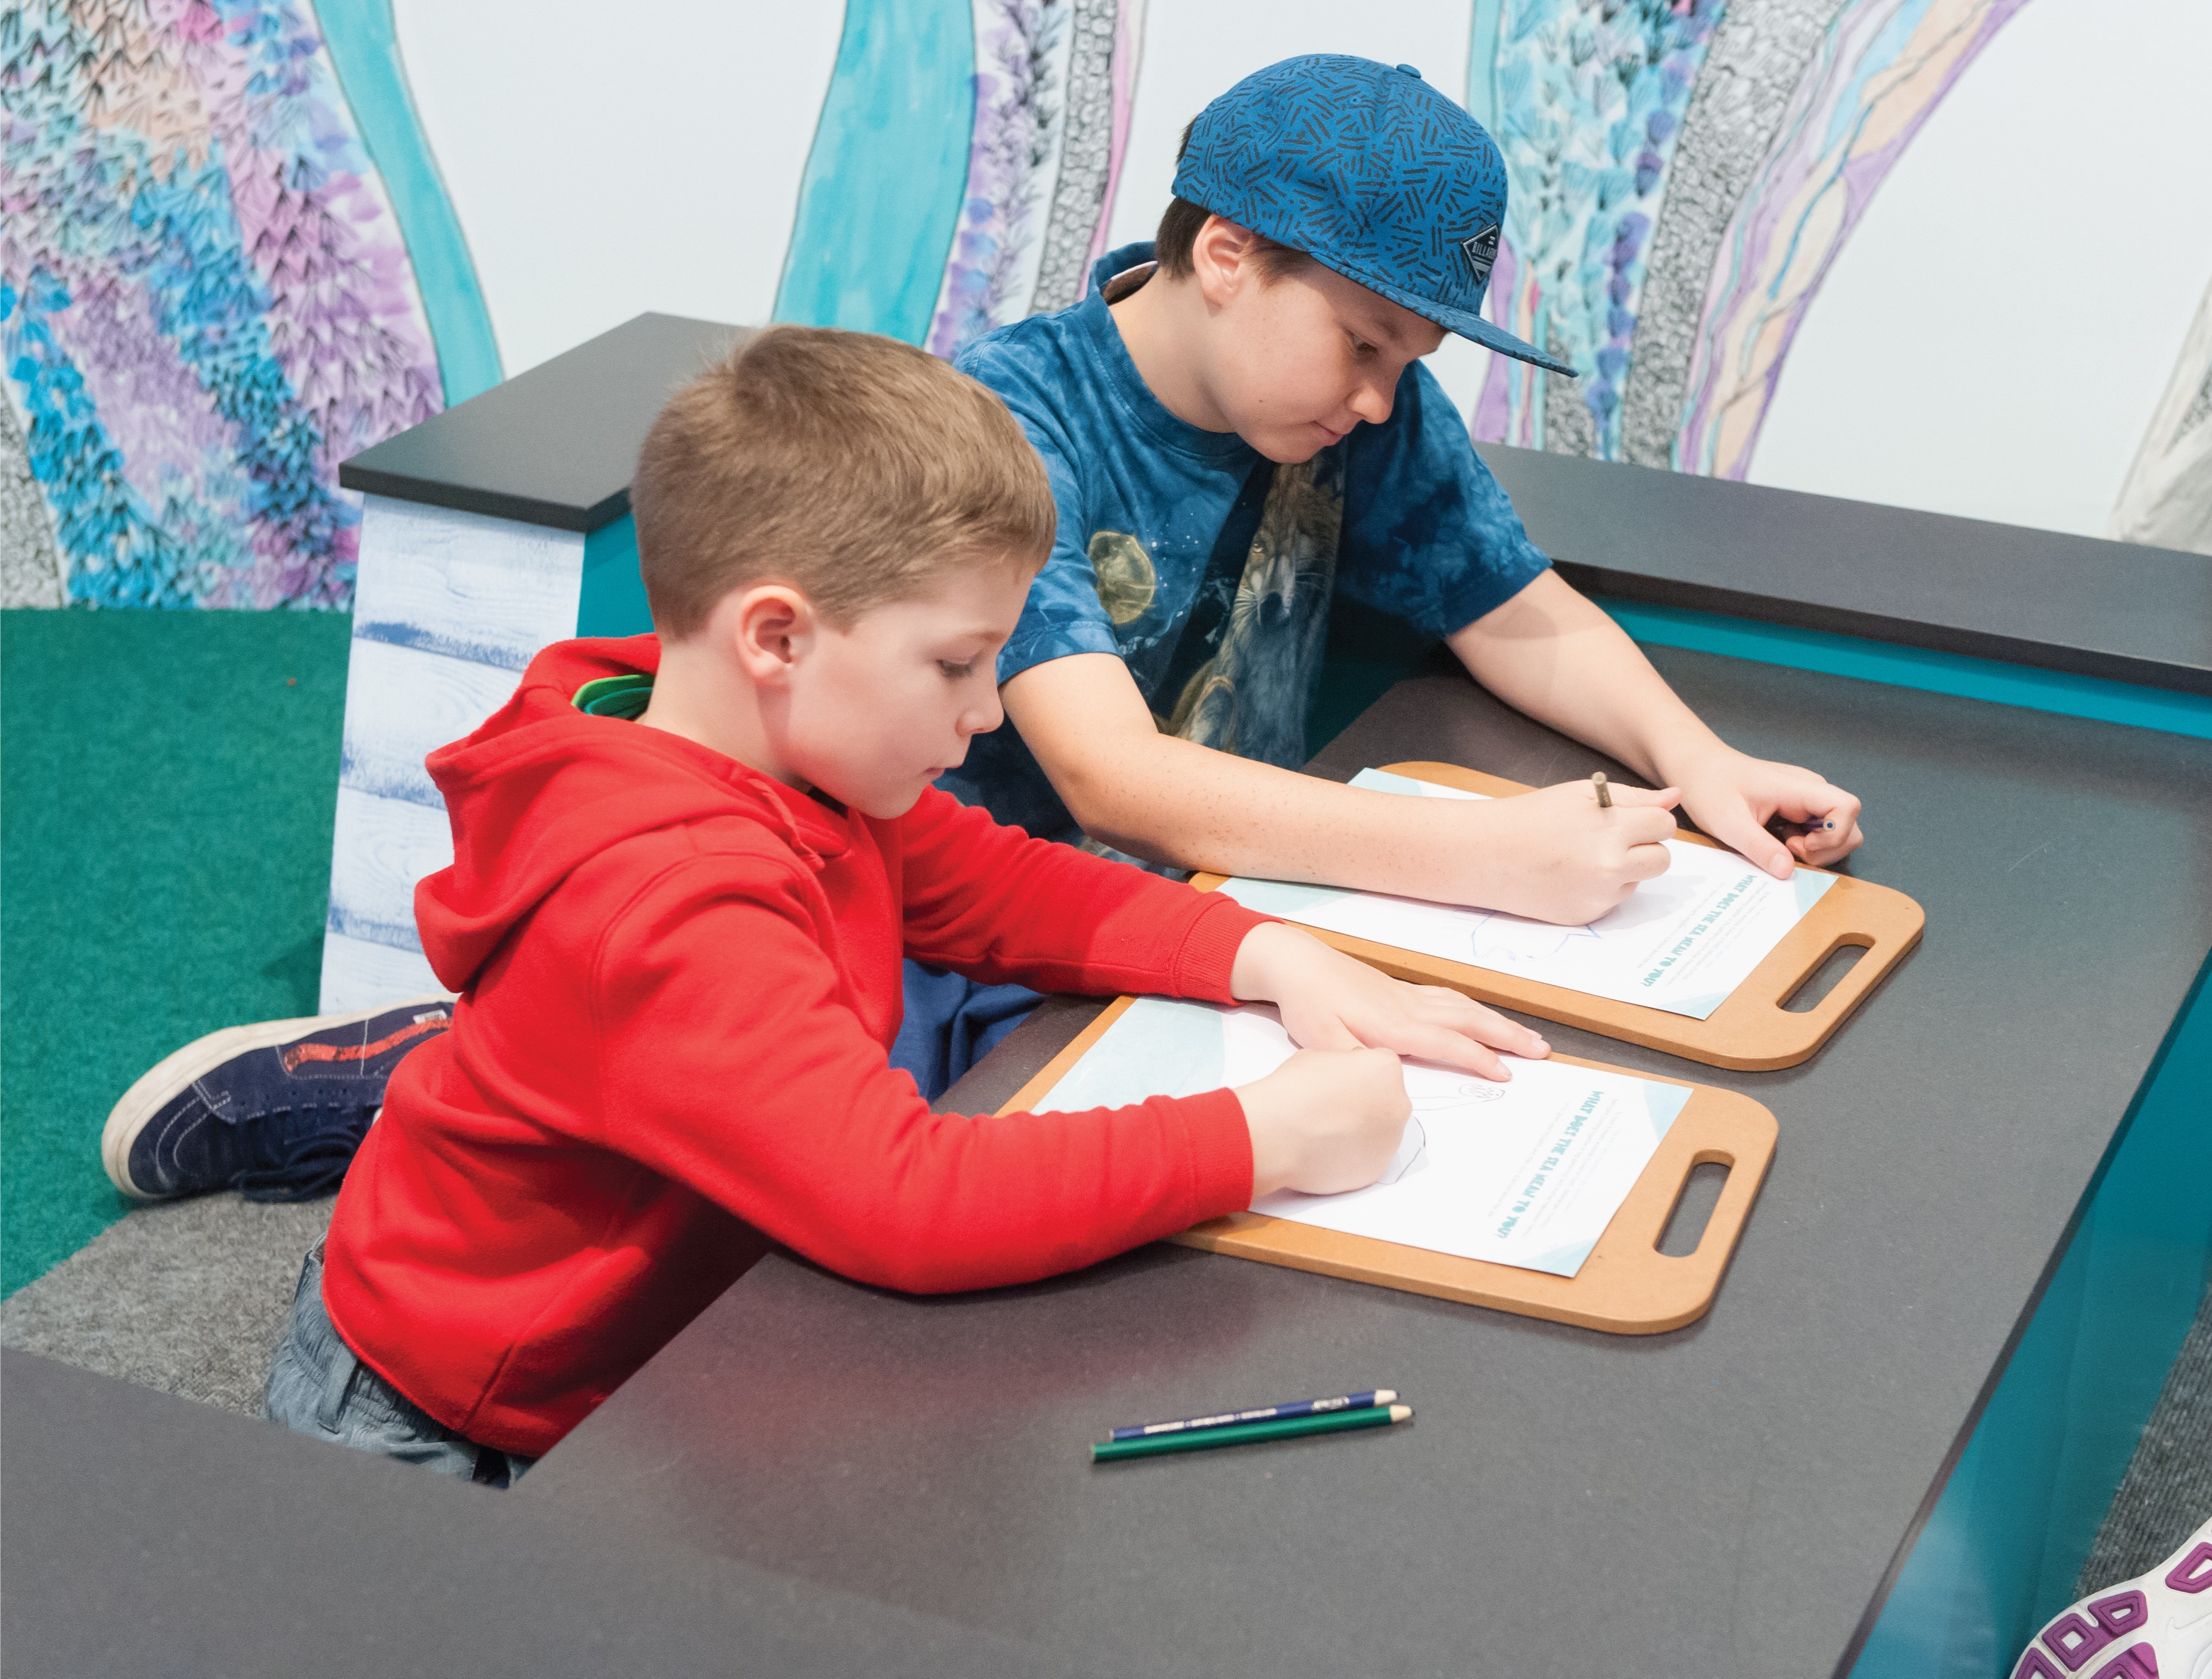 QAGOMA'S KIDS ON TOUR RETURNS TO THE GALLERY & MUSEUM